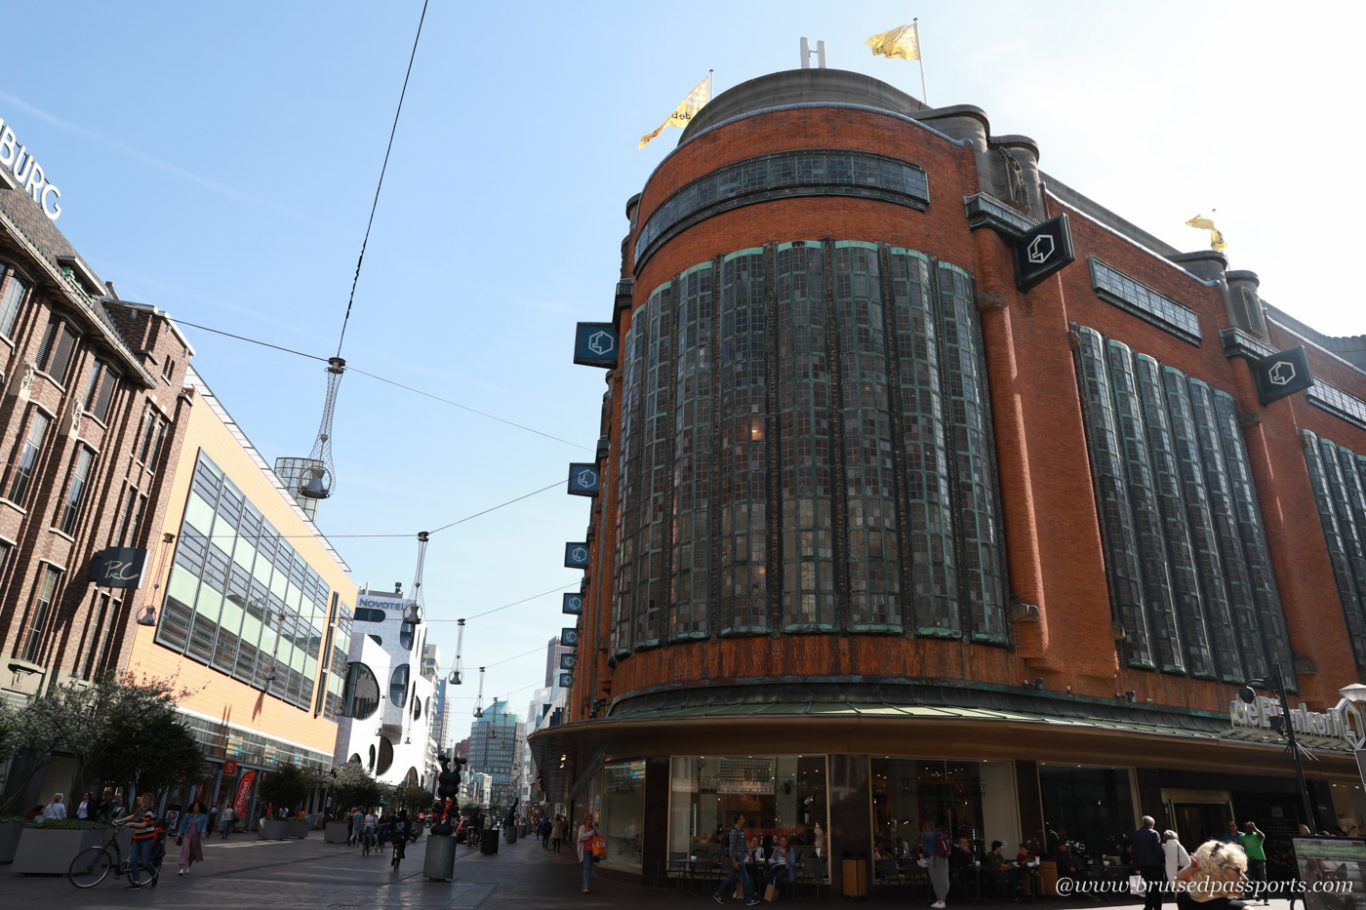 shopping quarter in The Hague